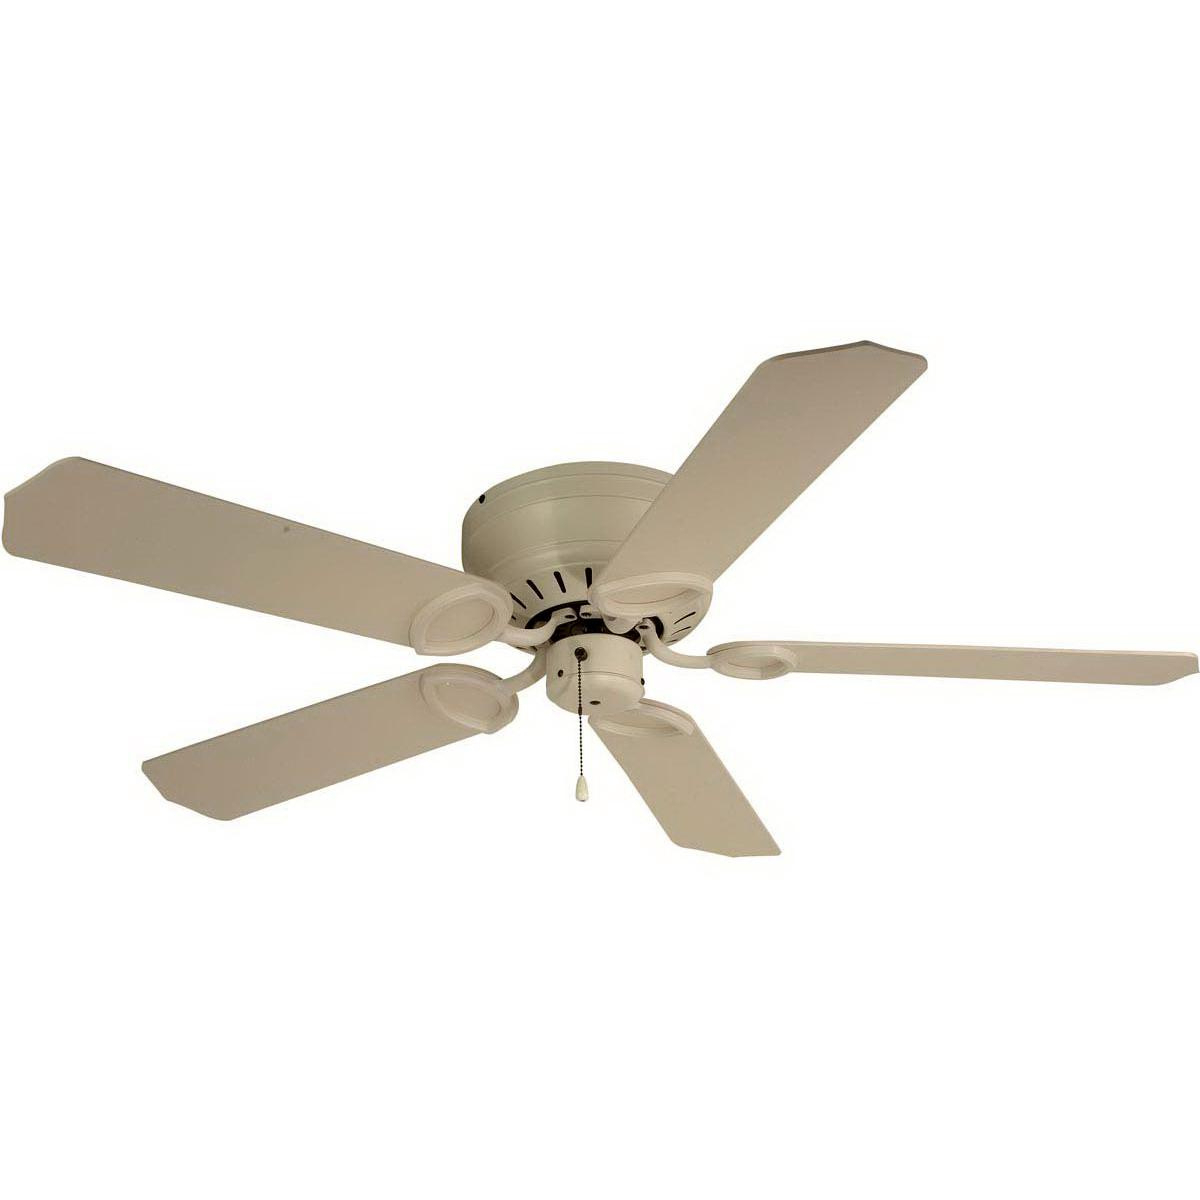 Craftmade Uh52Aw Pro Universal Hugger Ceiling Fan 52 Inch 5 With Regard To Best And Newest Dyno 5 Blade Ceiling Fans (View 6 of 20)